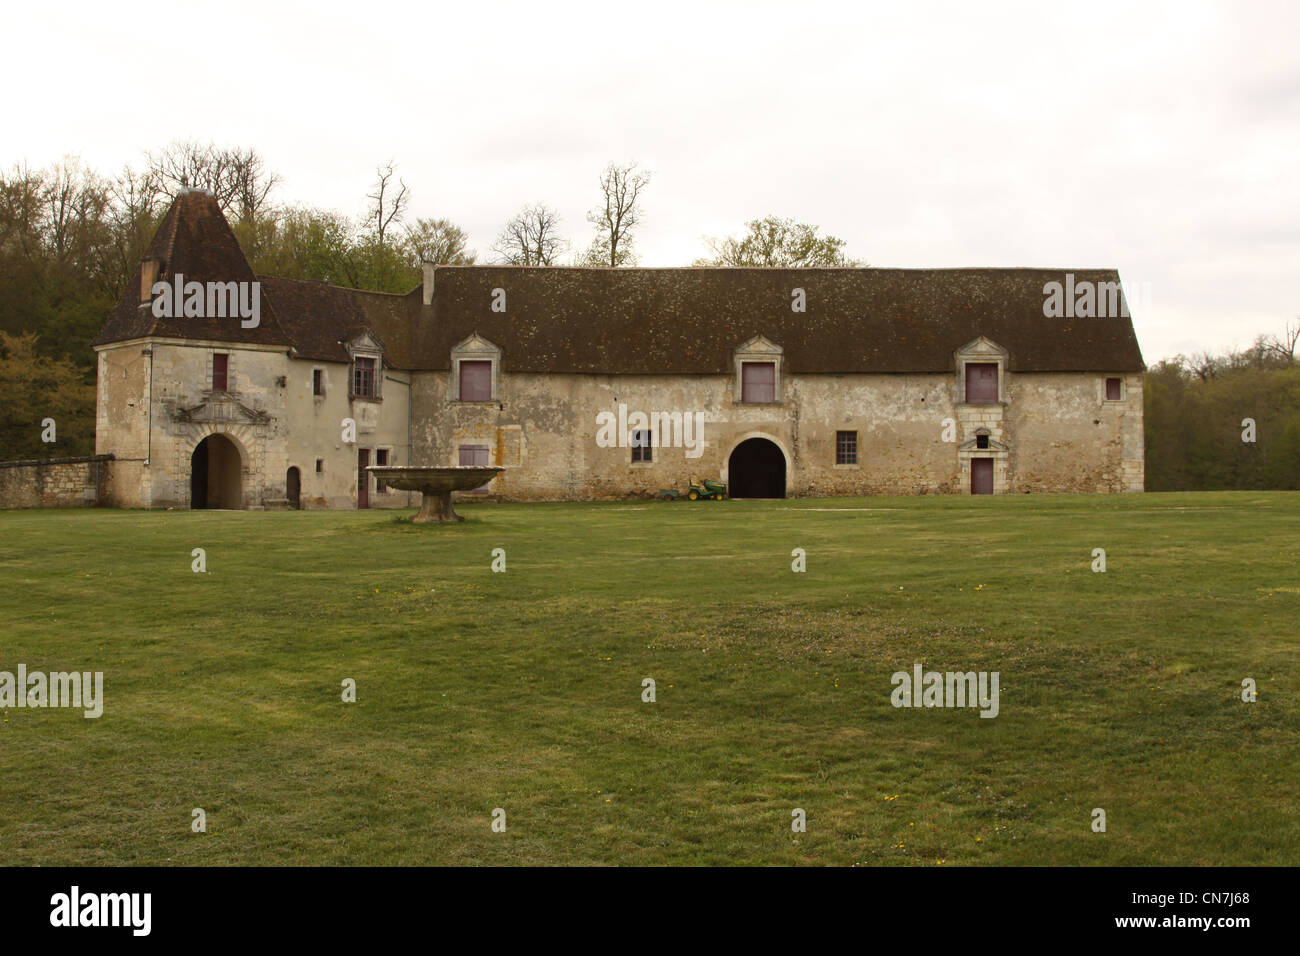 Gate house or Stables at Château of Rochefoucauld - Stock Image